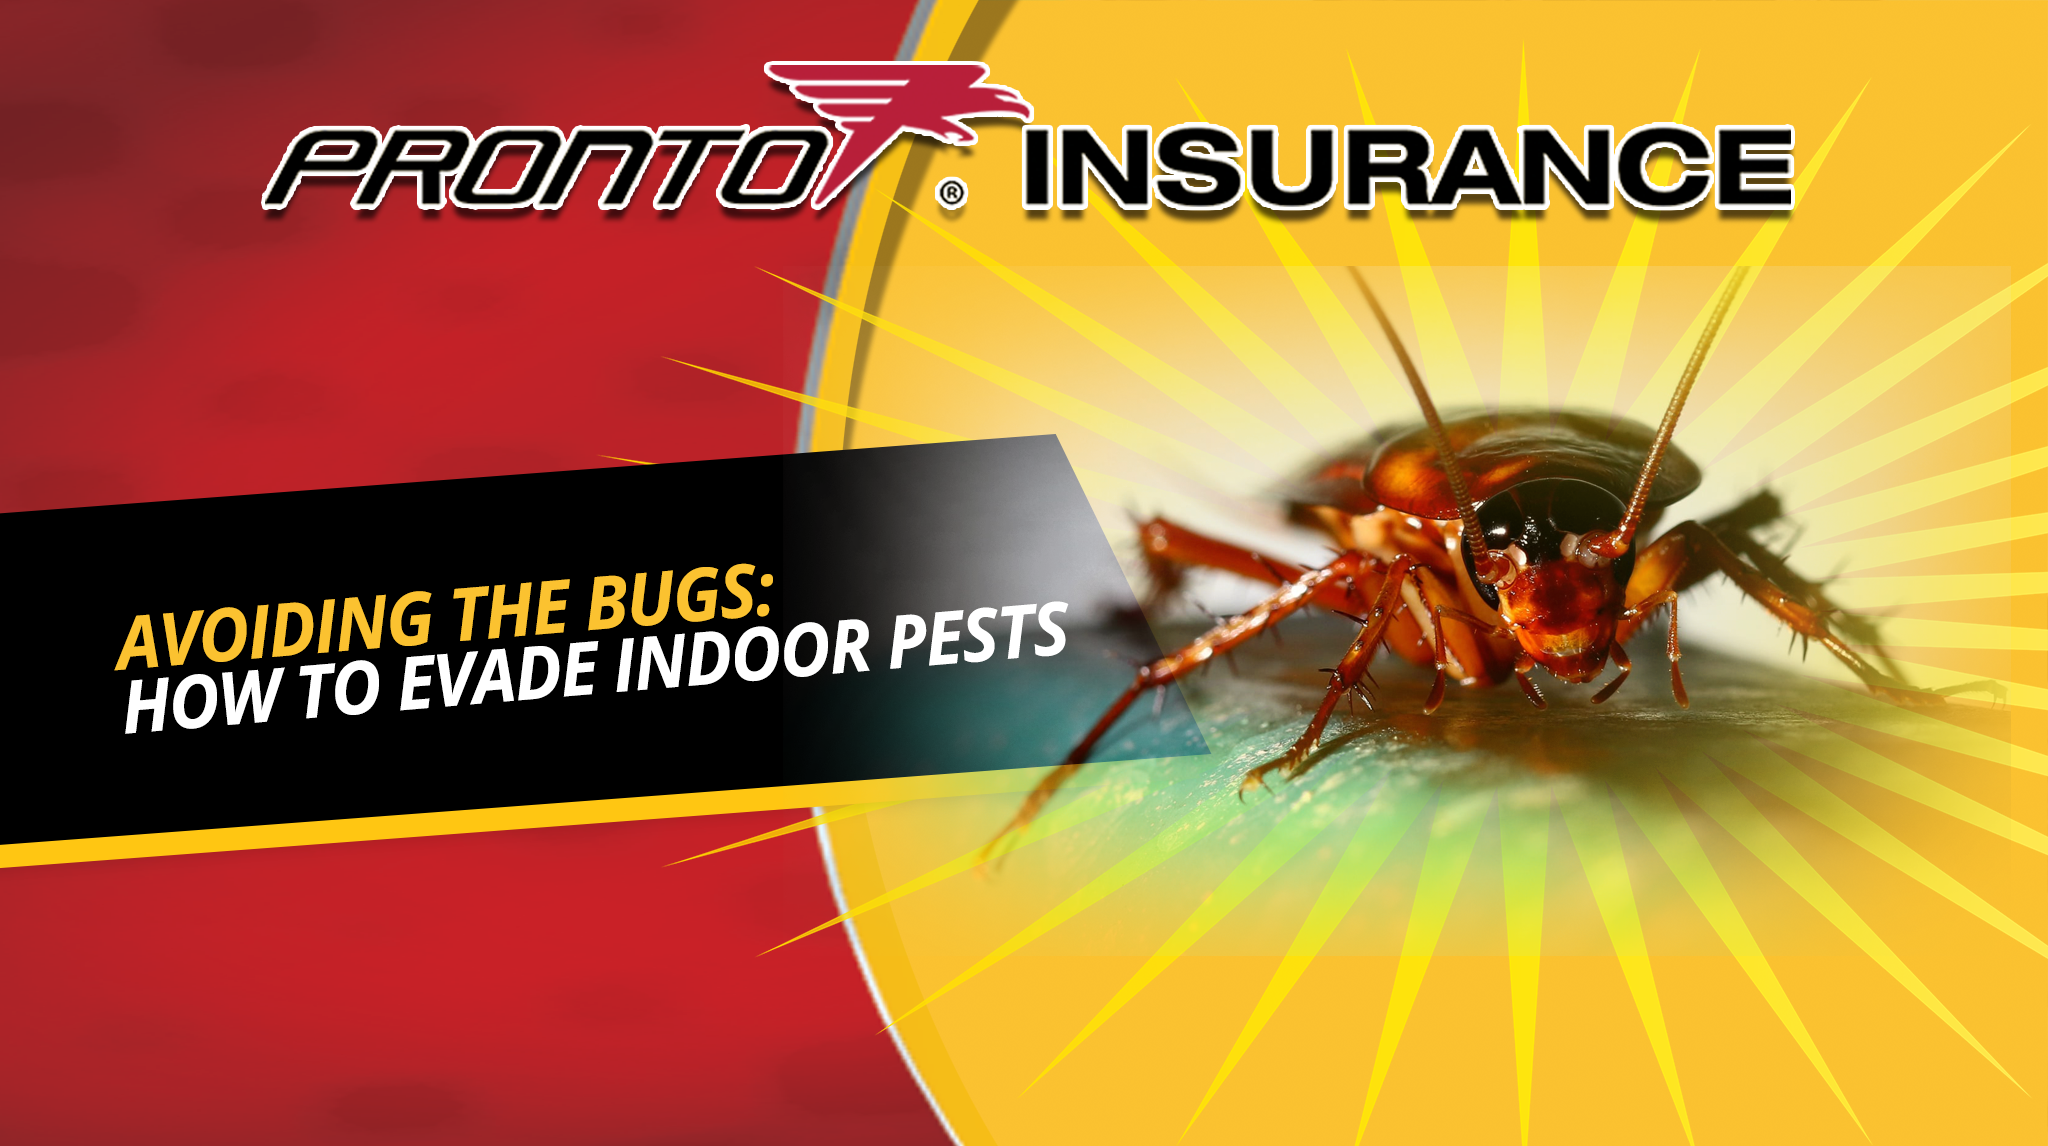 AVOIDING THE BUGS: HOW TO EVADE INDOOR PESTS